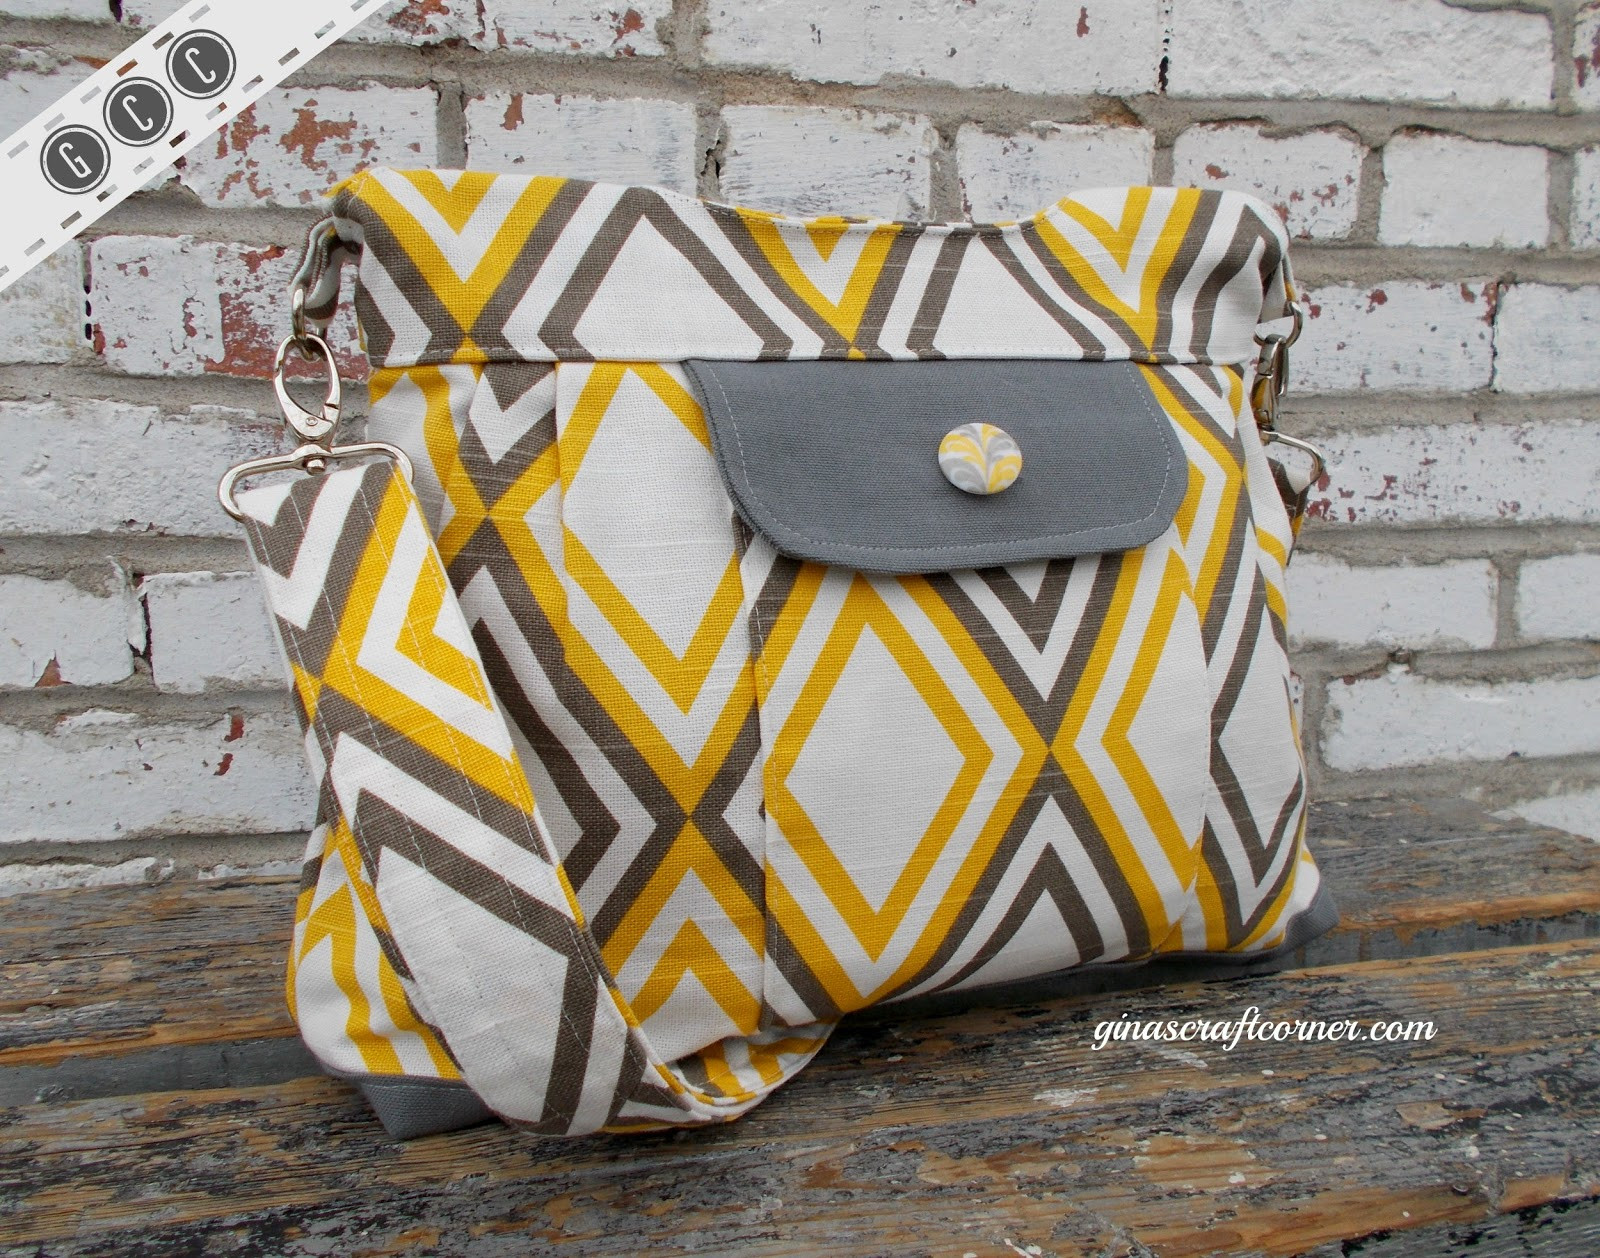 Gina s craft corner my new concealed carry purse reveal and